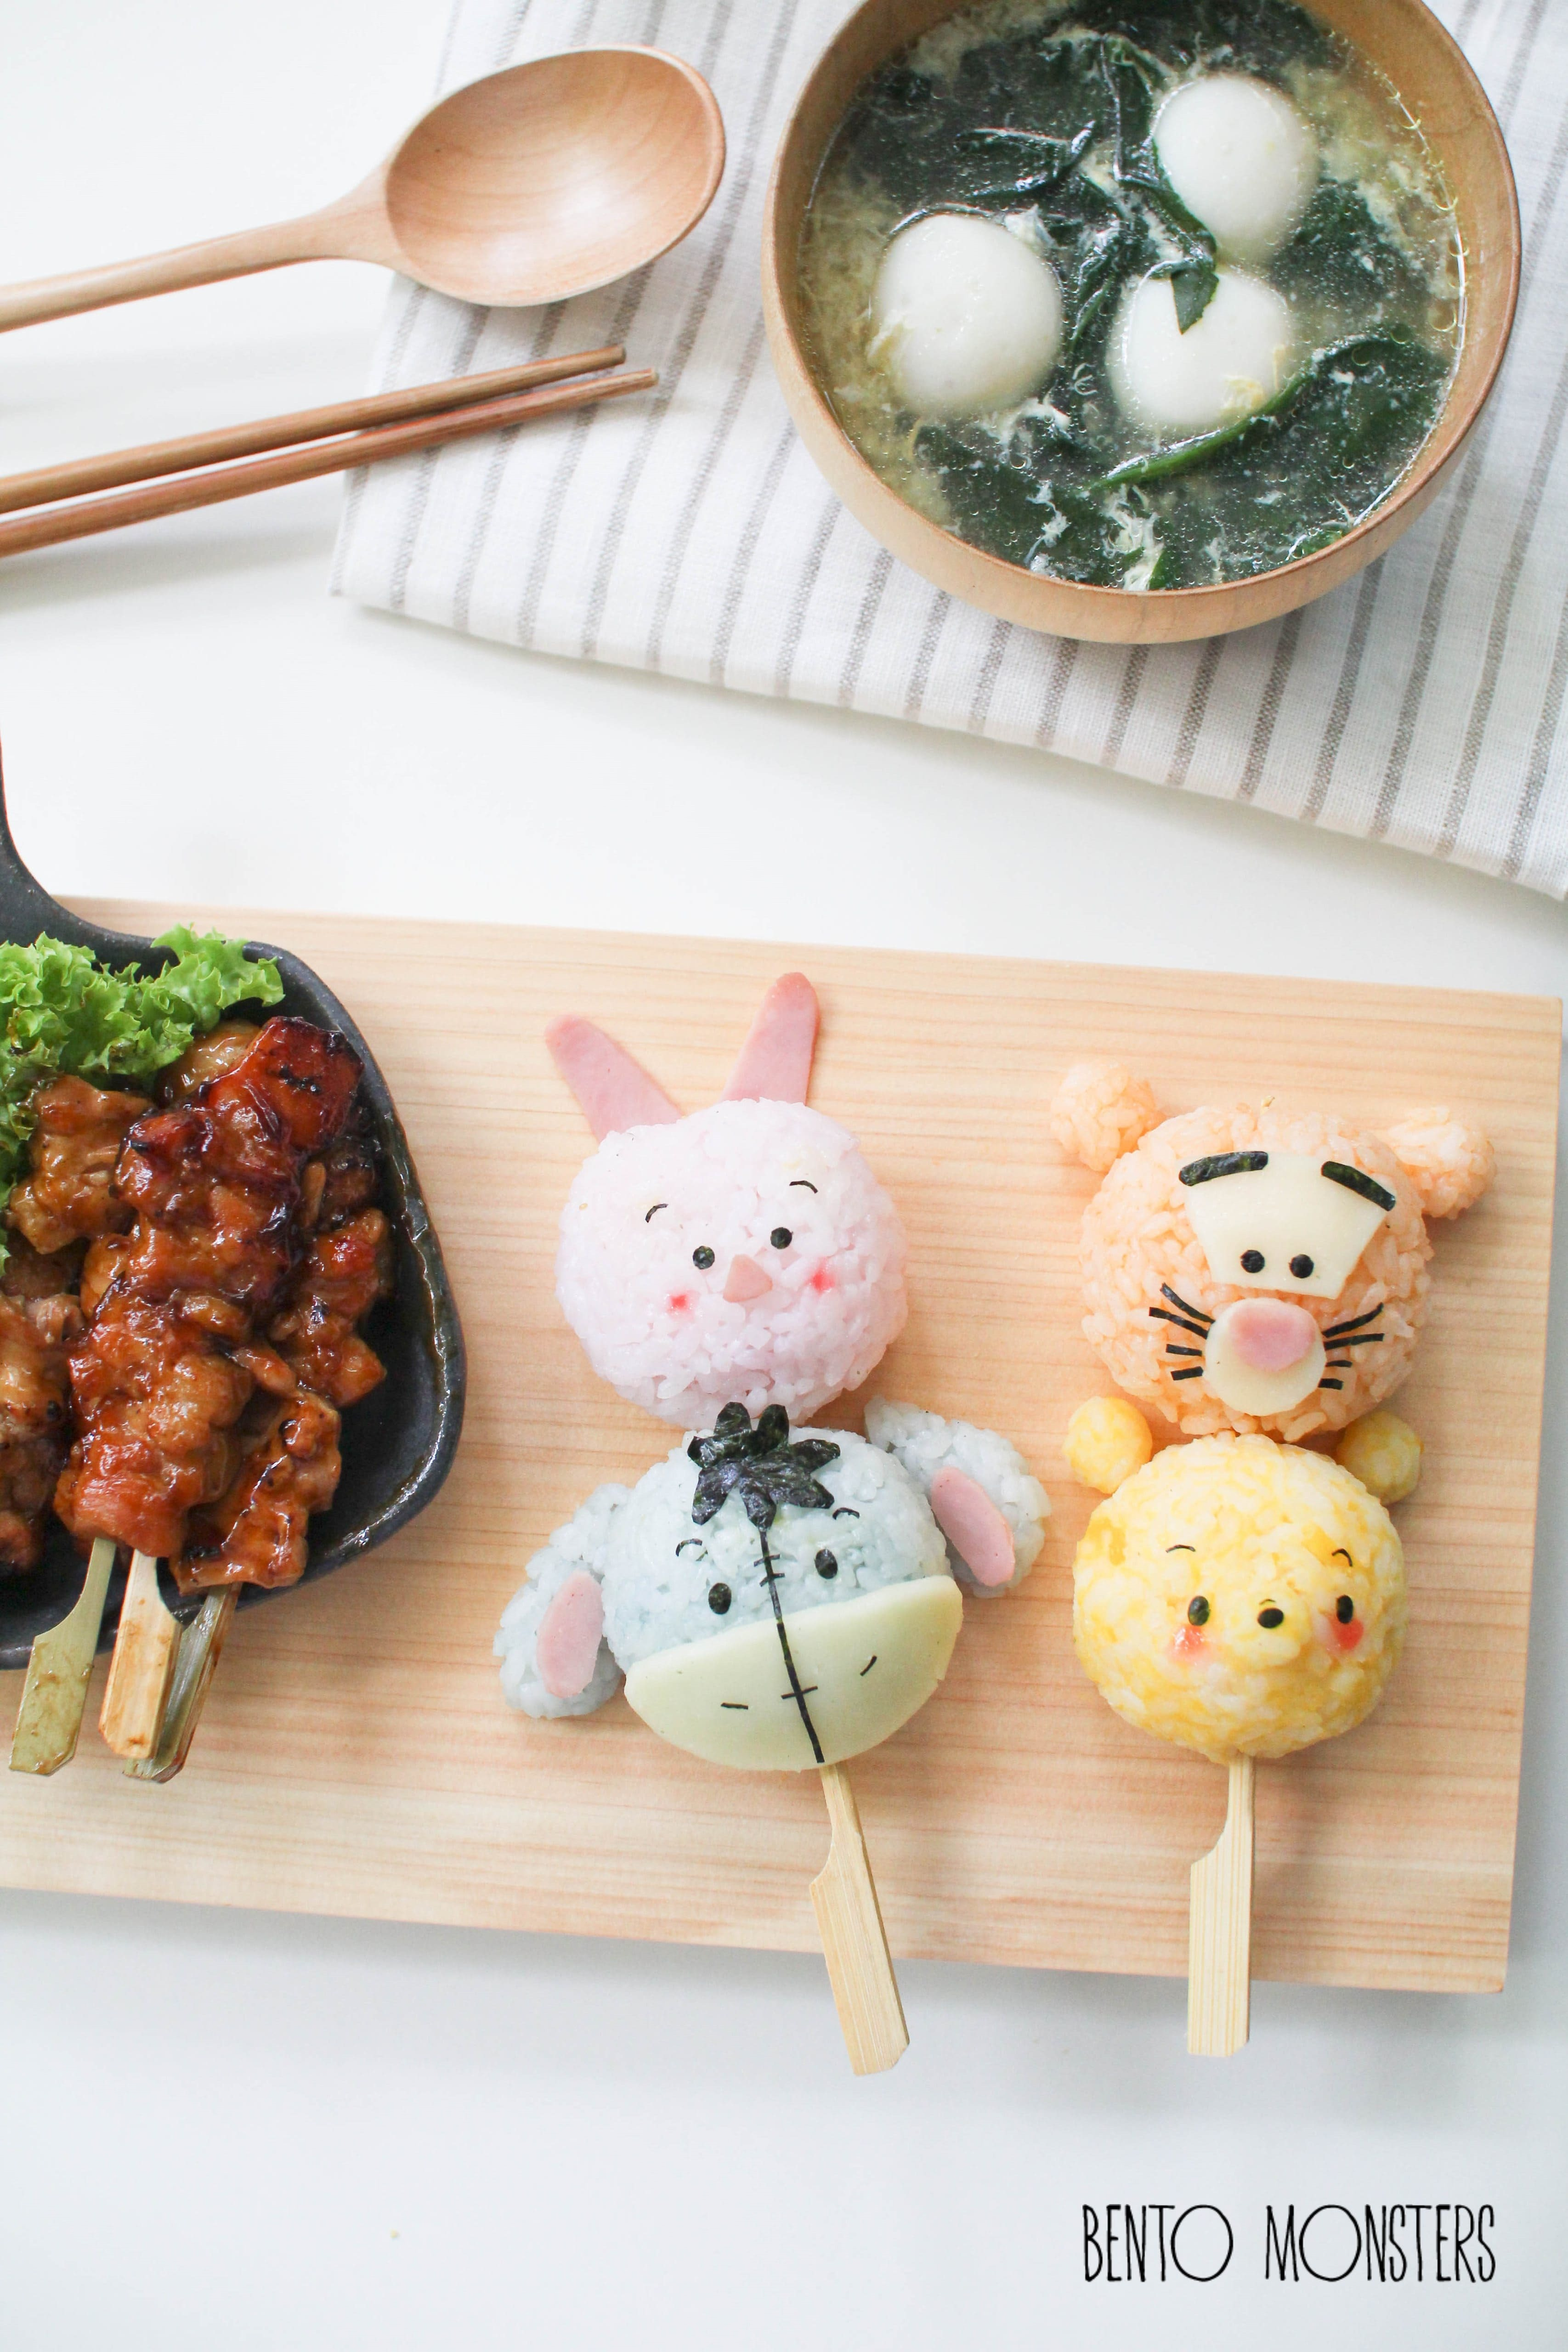 Winnie the Pooh Rice Ball Kabobs made by Bento Monsters